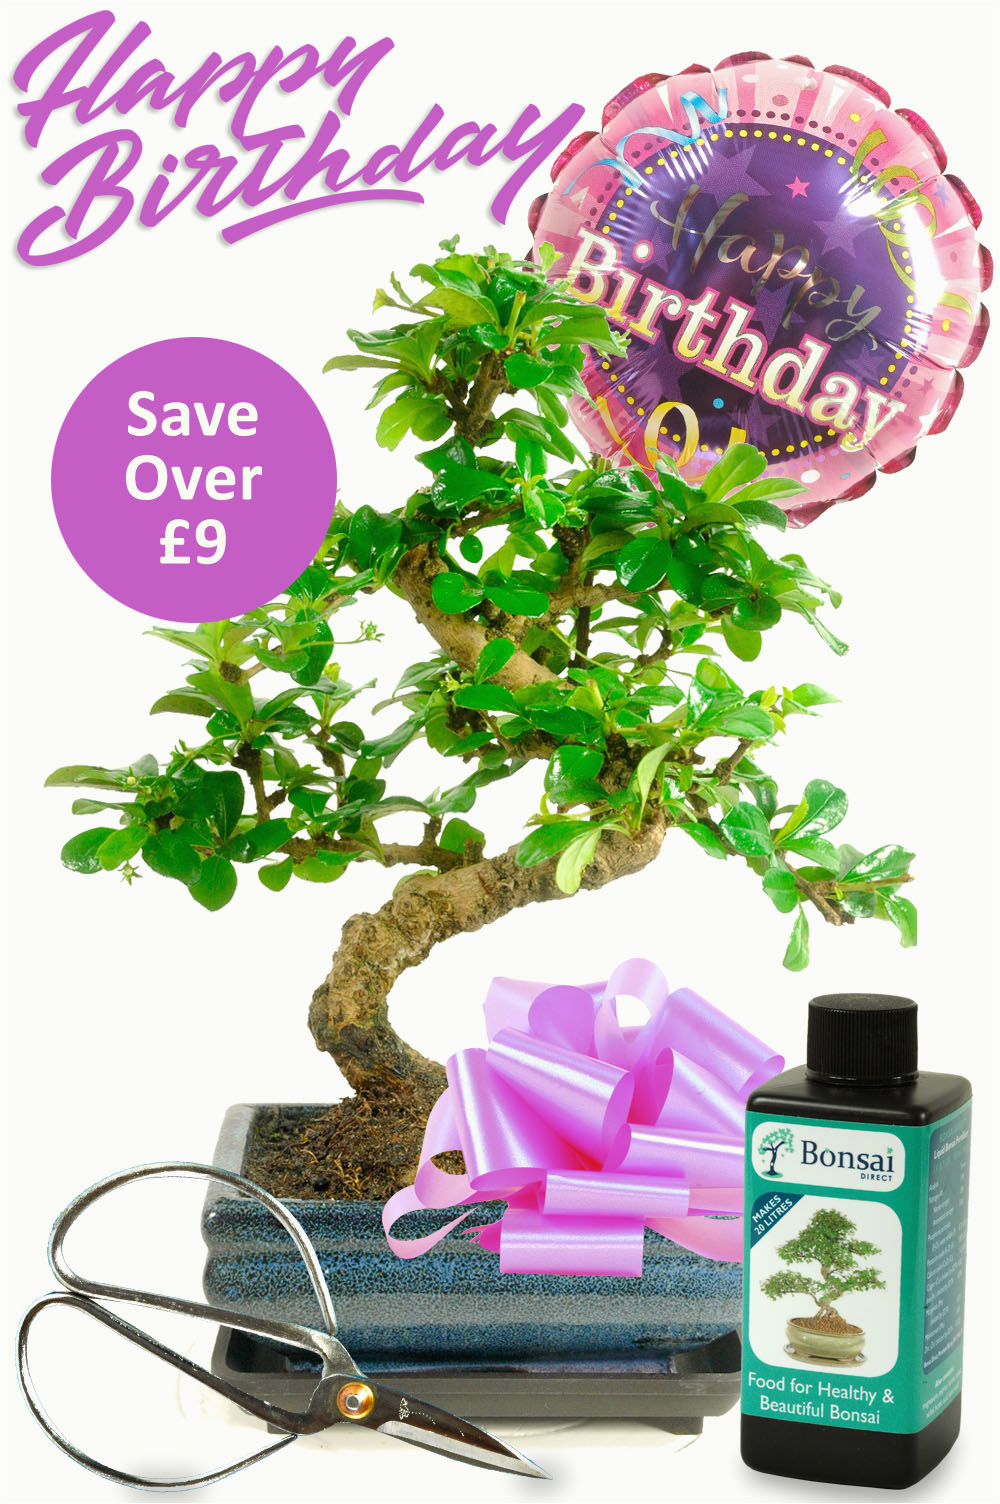 flowering bonsai birthday kit for her with free delivery